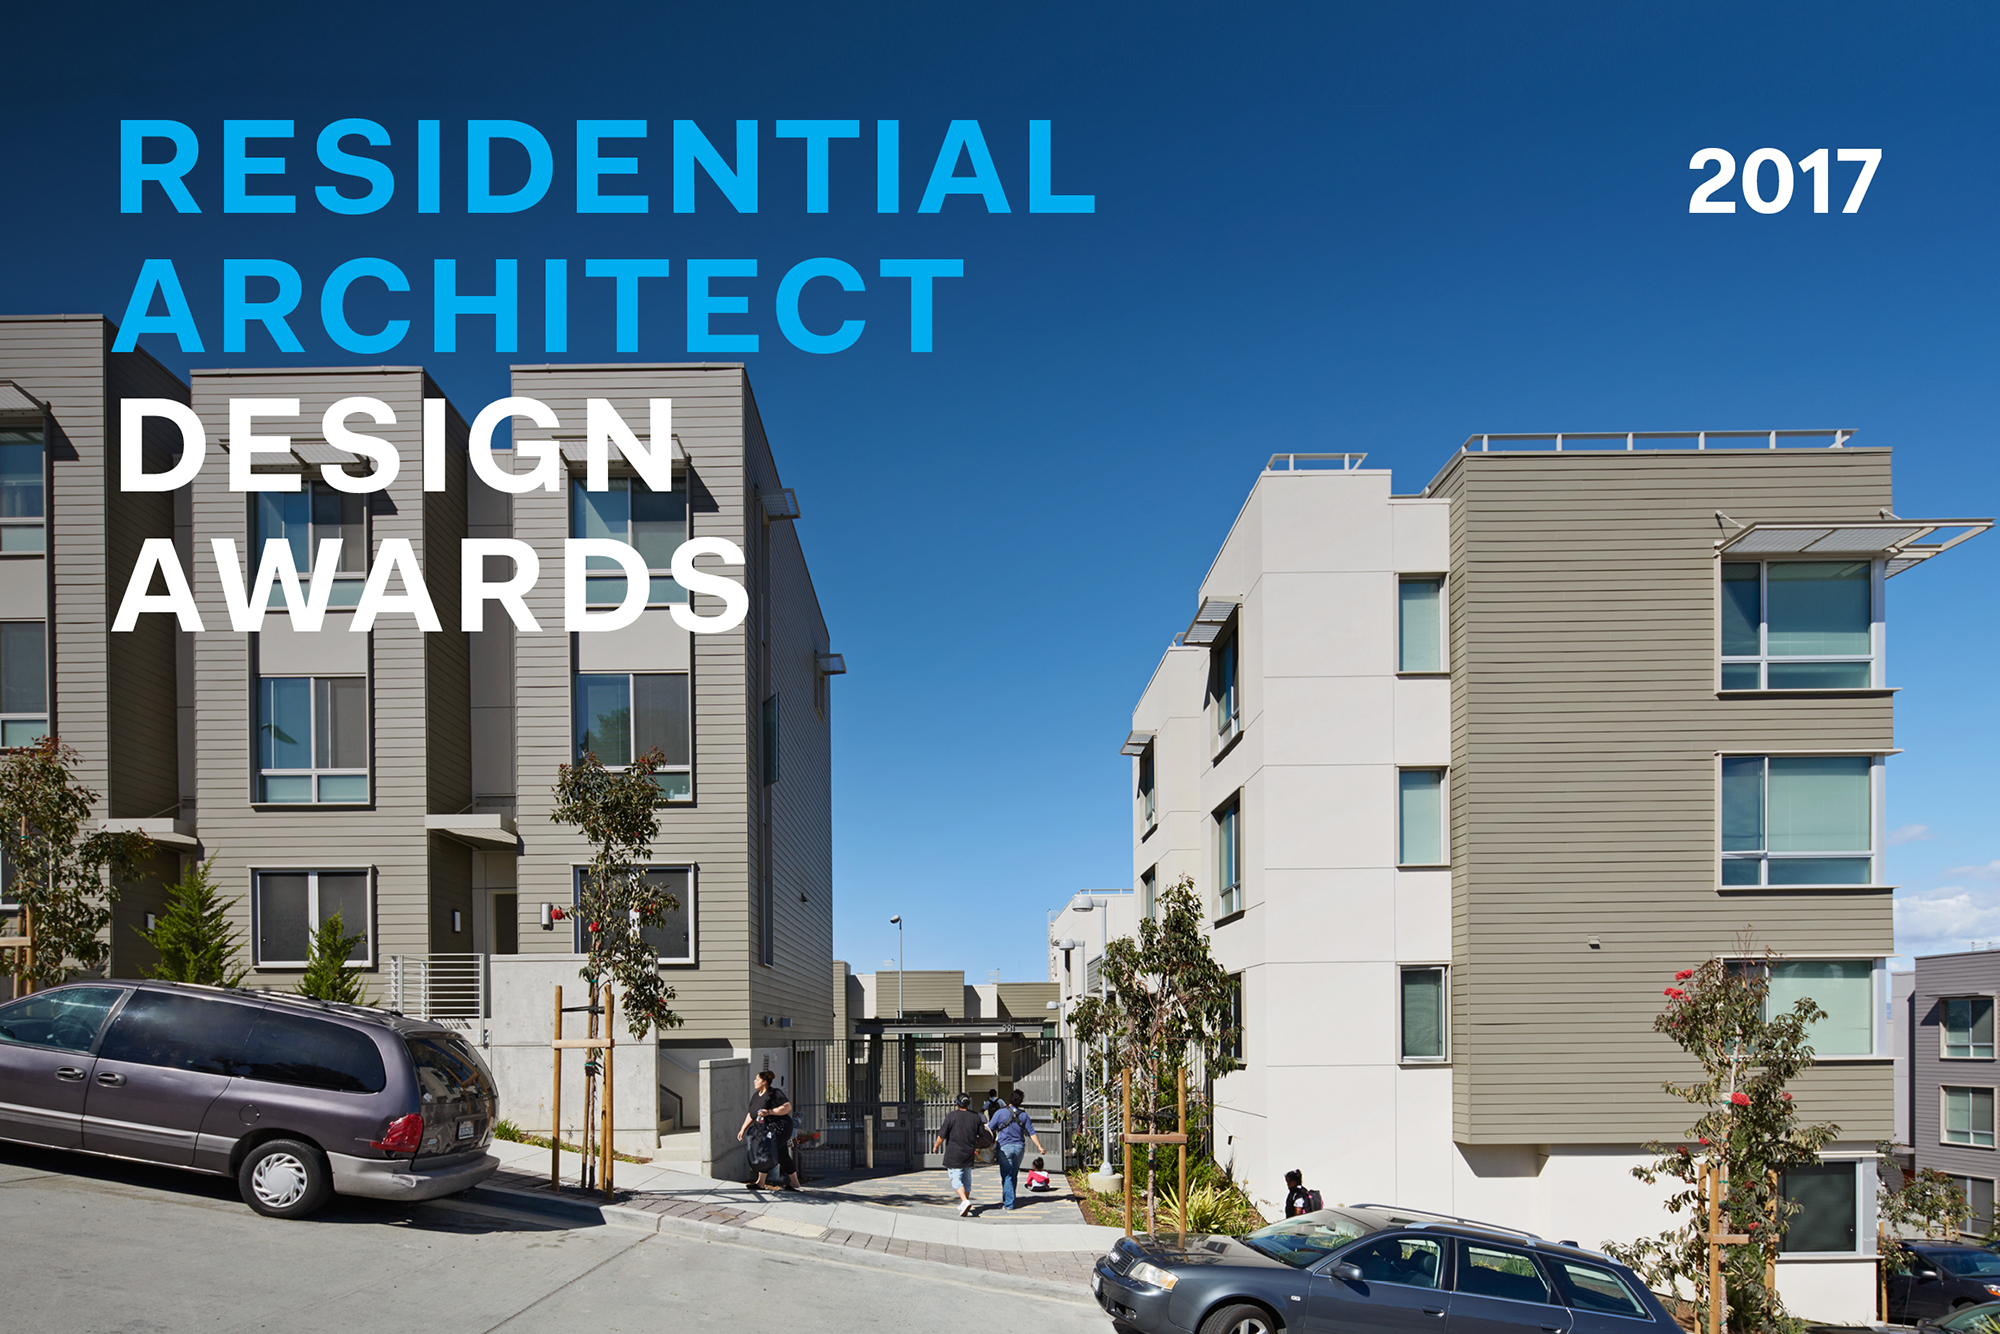 Architectural Design Of Residential Building The Winners Of The 2017 Residential Architect Design Awards